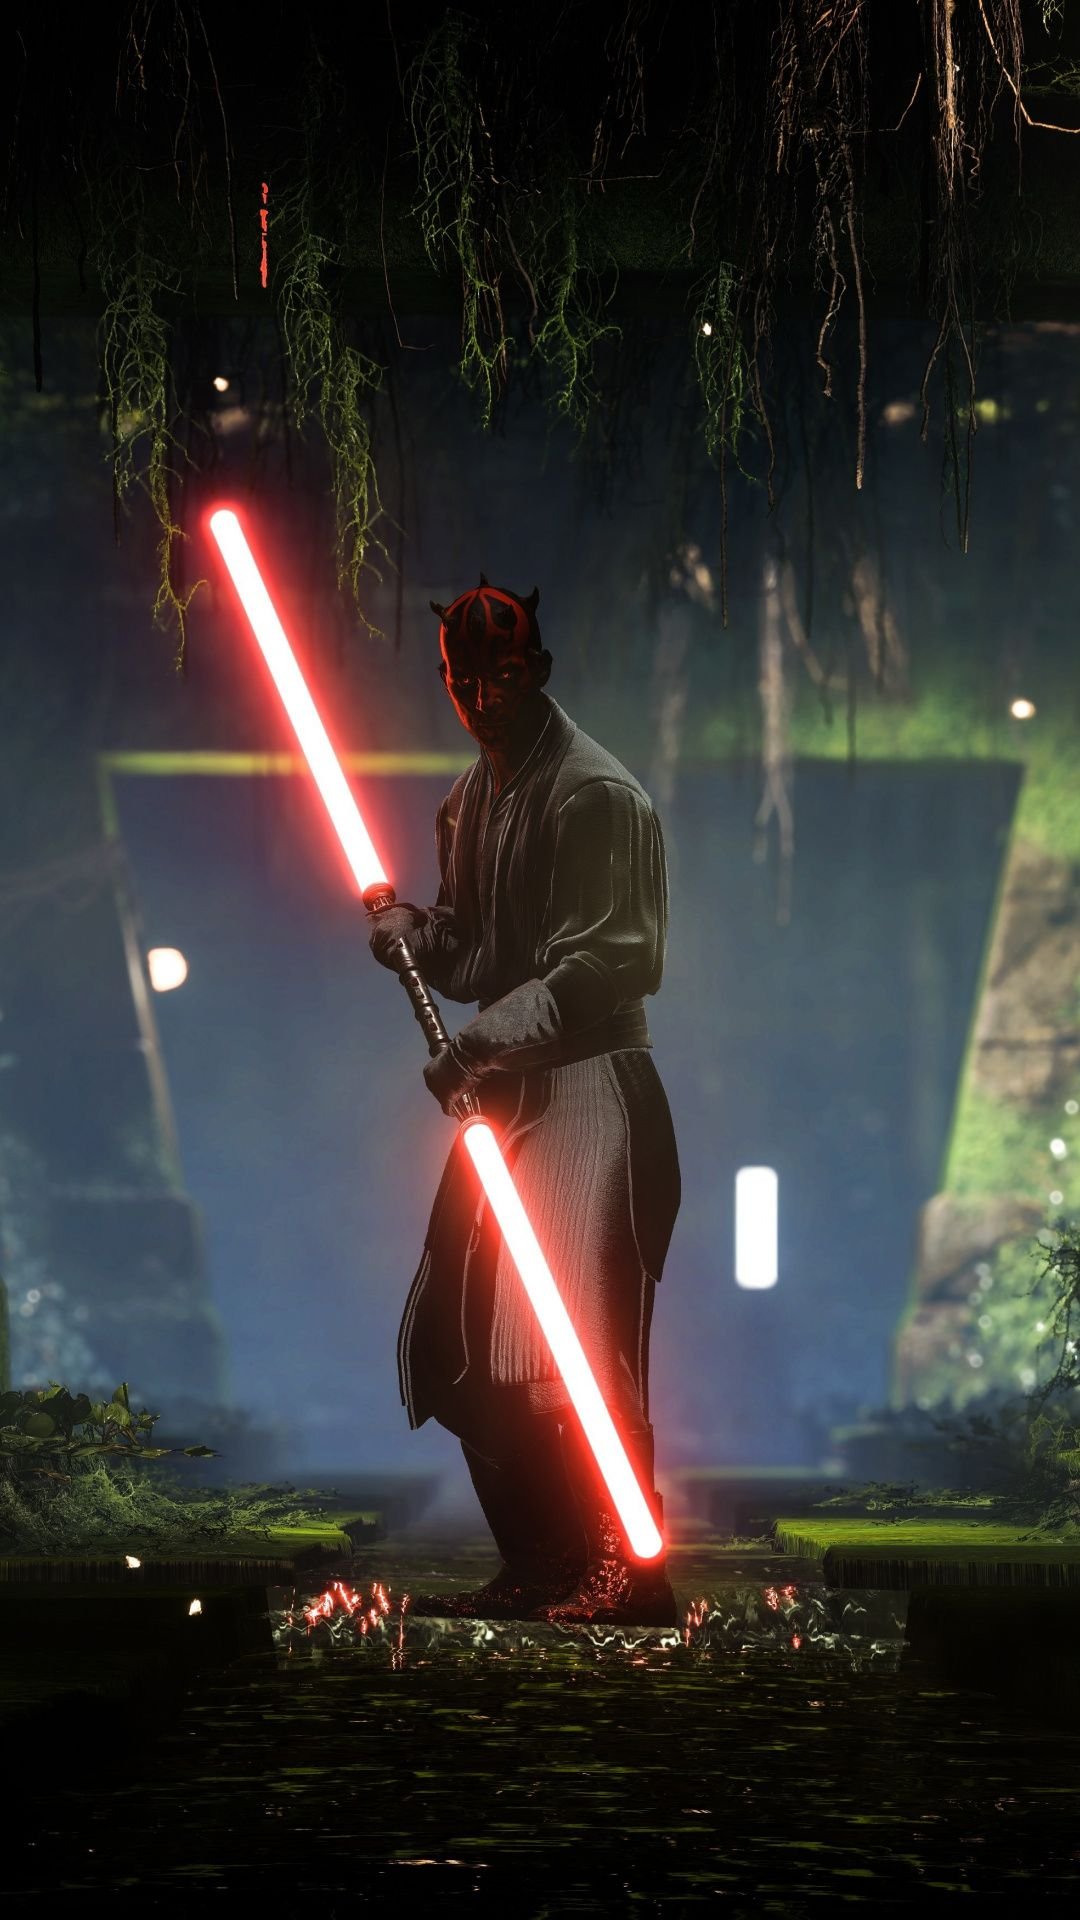 Darth Maul Star Wars Battlefront Ii Video Game 1080x1920